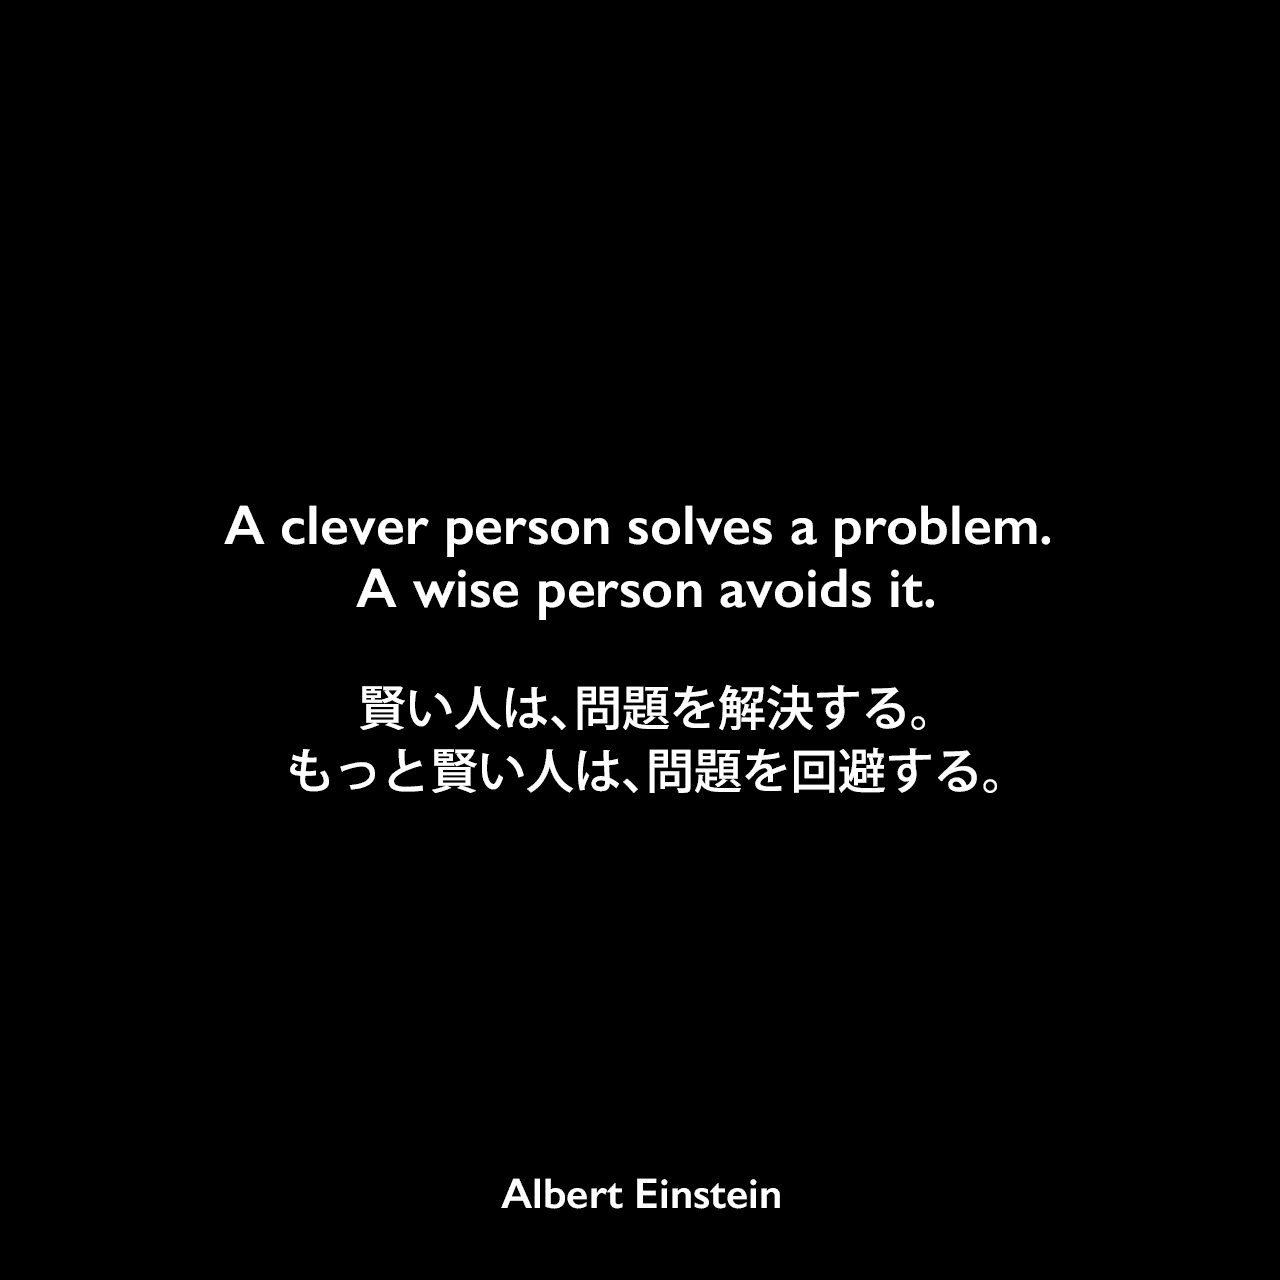 A clever person solves a problem. A wise person avoids it.賢い人は、問題を解決する。もっと賢い人は、問題を回避する。Albert Einstein